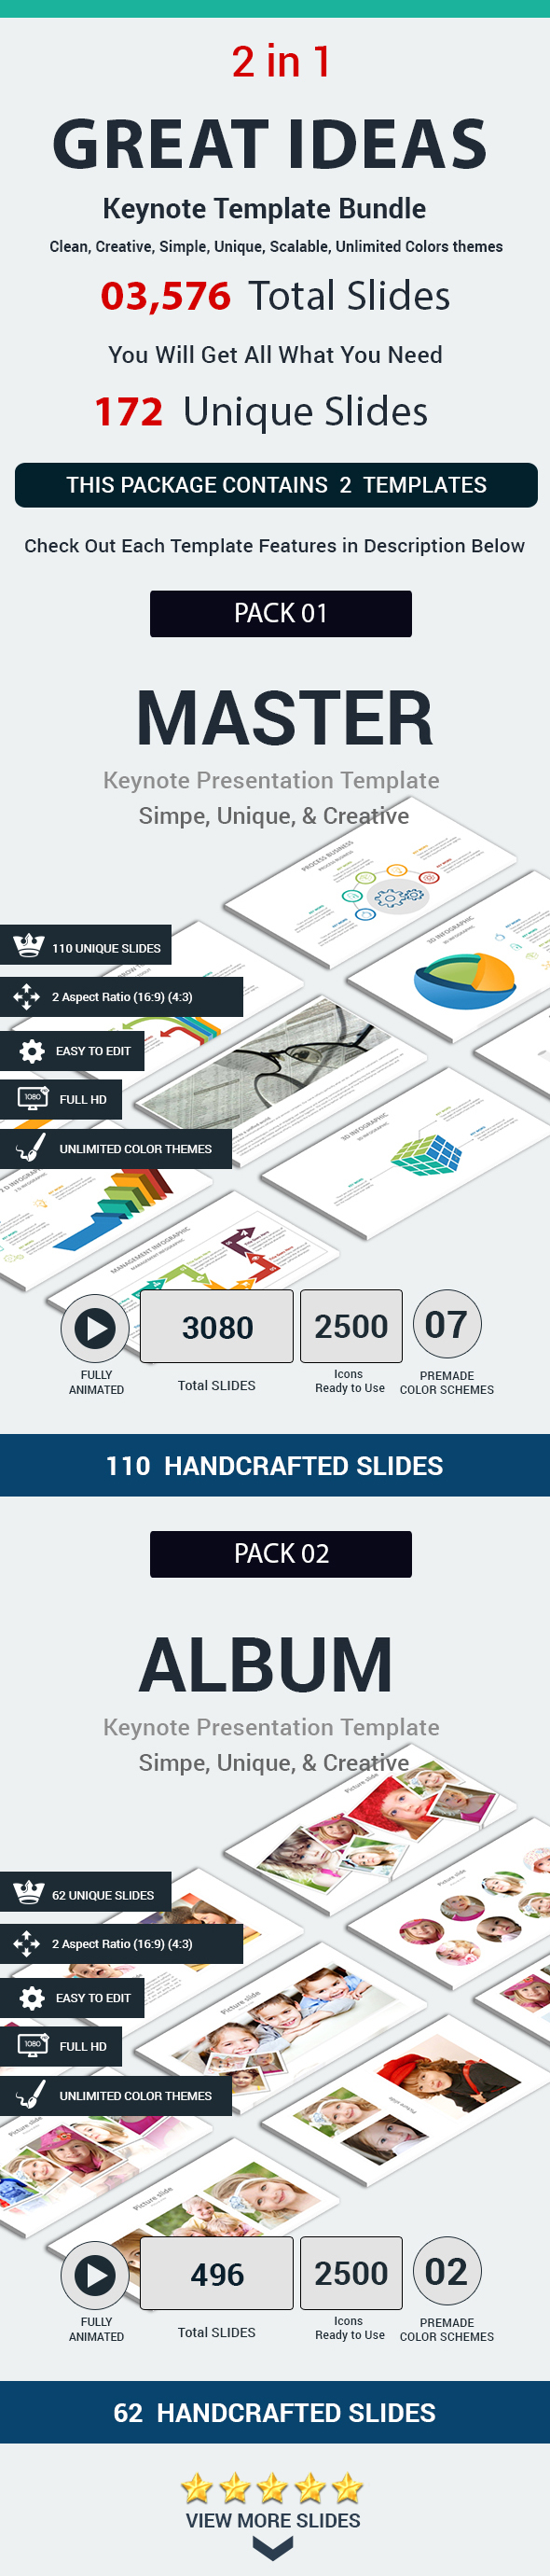 Great Ideas 2 in 1 Keynote Template Bundle - Keynote Templates Presentation Templates